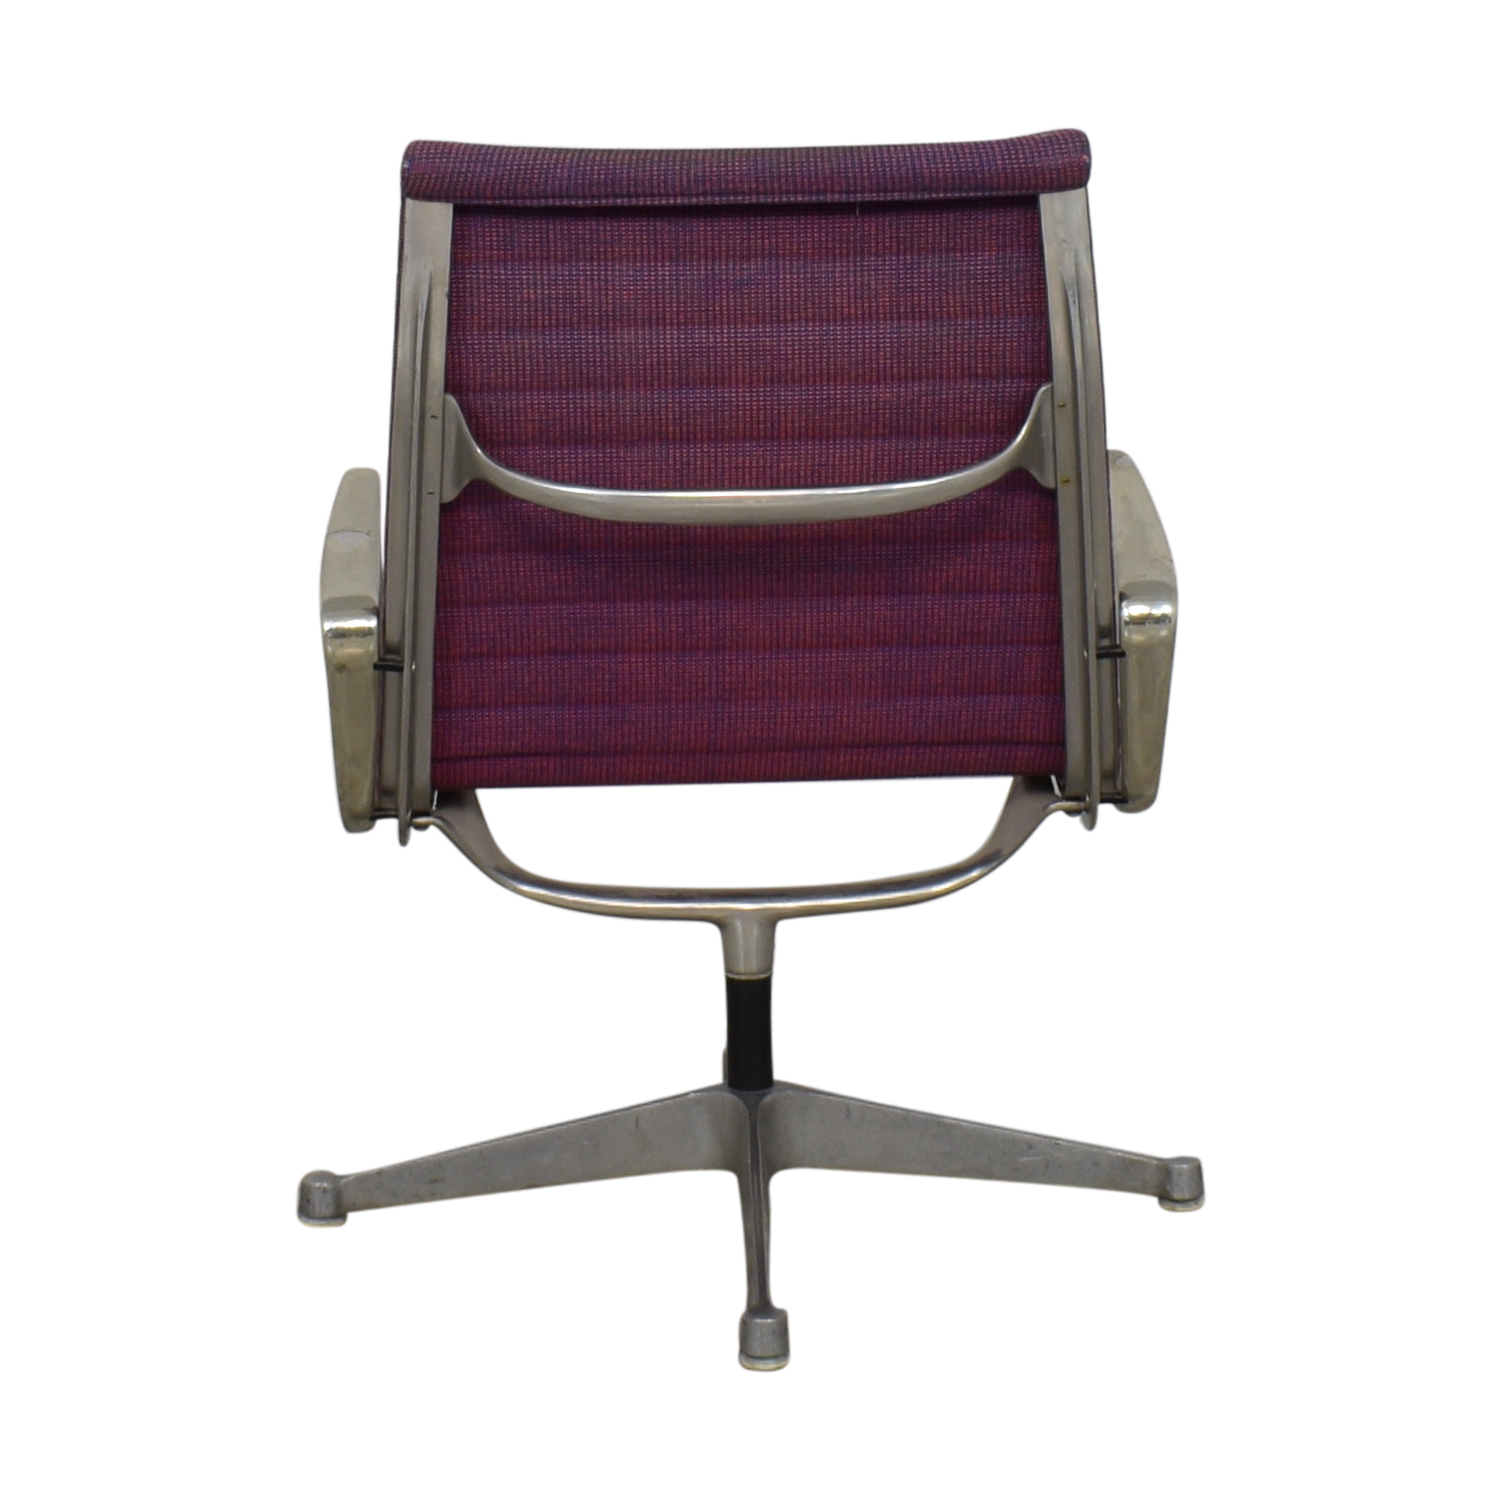 Herman Miller Herman Miller Eames Office Chair Chairs